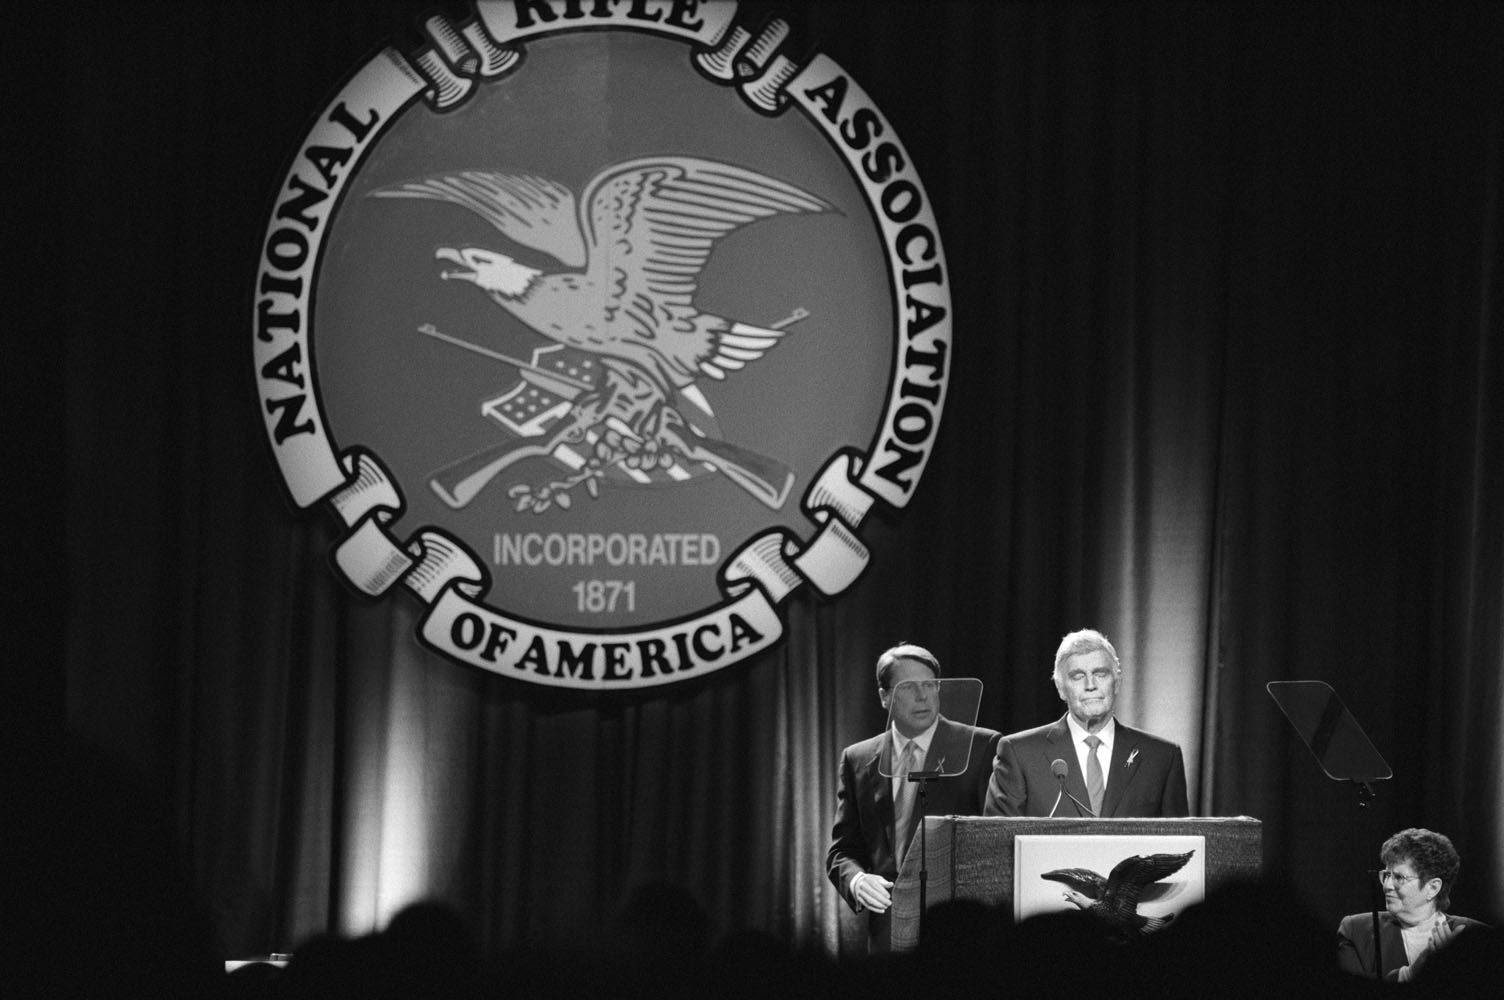 Charlton Heston, president of the National Rifle Association (NRA), addresses a crowd of 2,000 pro-gun members at the Adam's Mark Hotel in Denver, while outside 8,000 demonstrators encircle the hotel to protest the timing of the NRA's annual meeting in the area only ten days after the local Columbine High School shooting rampage.